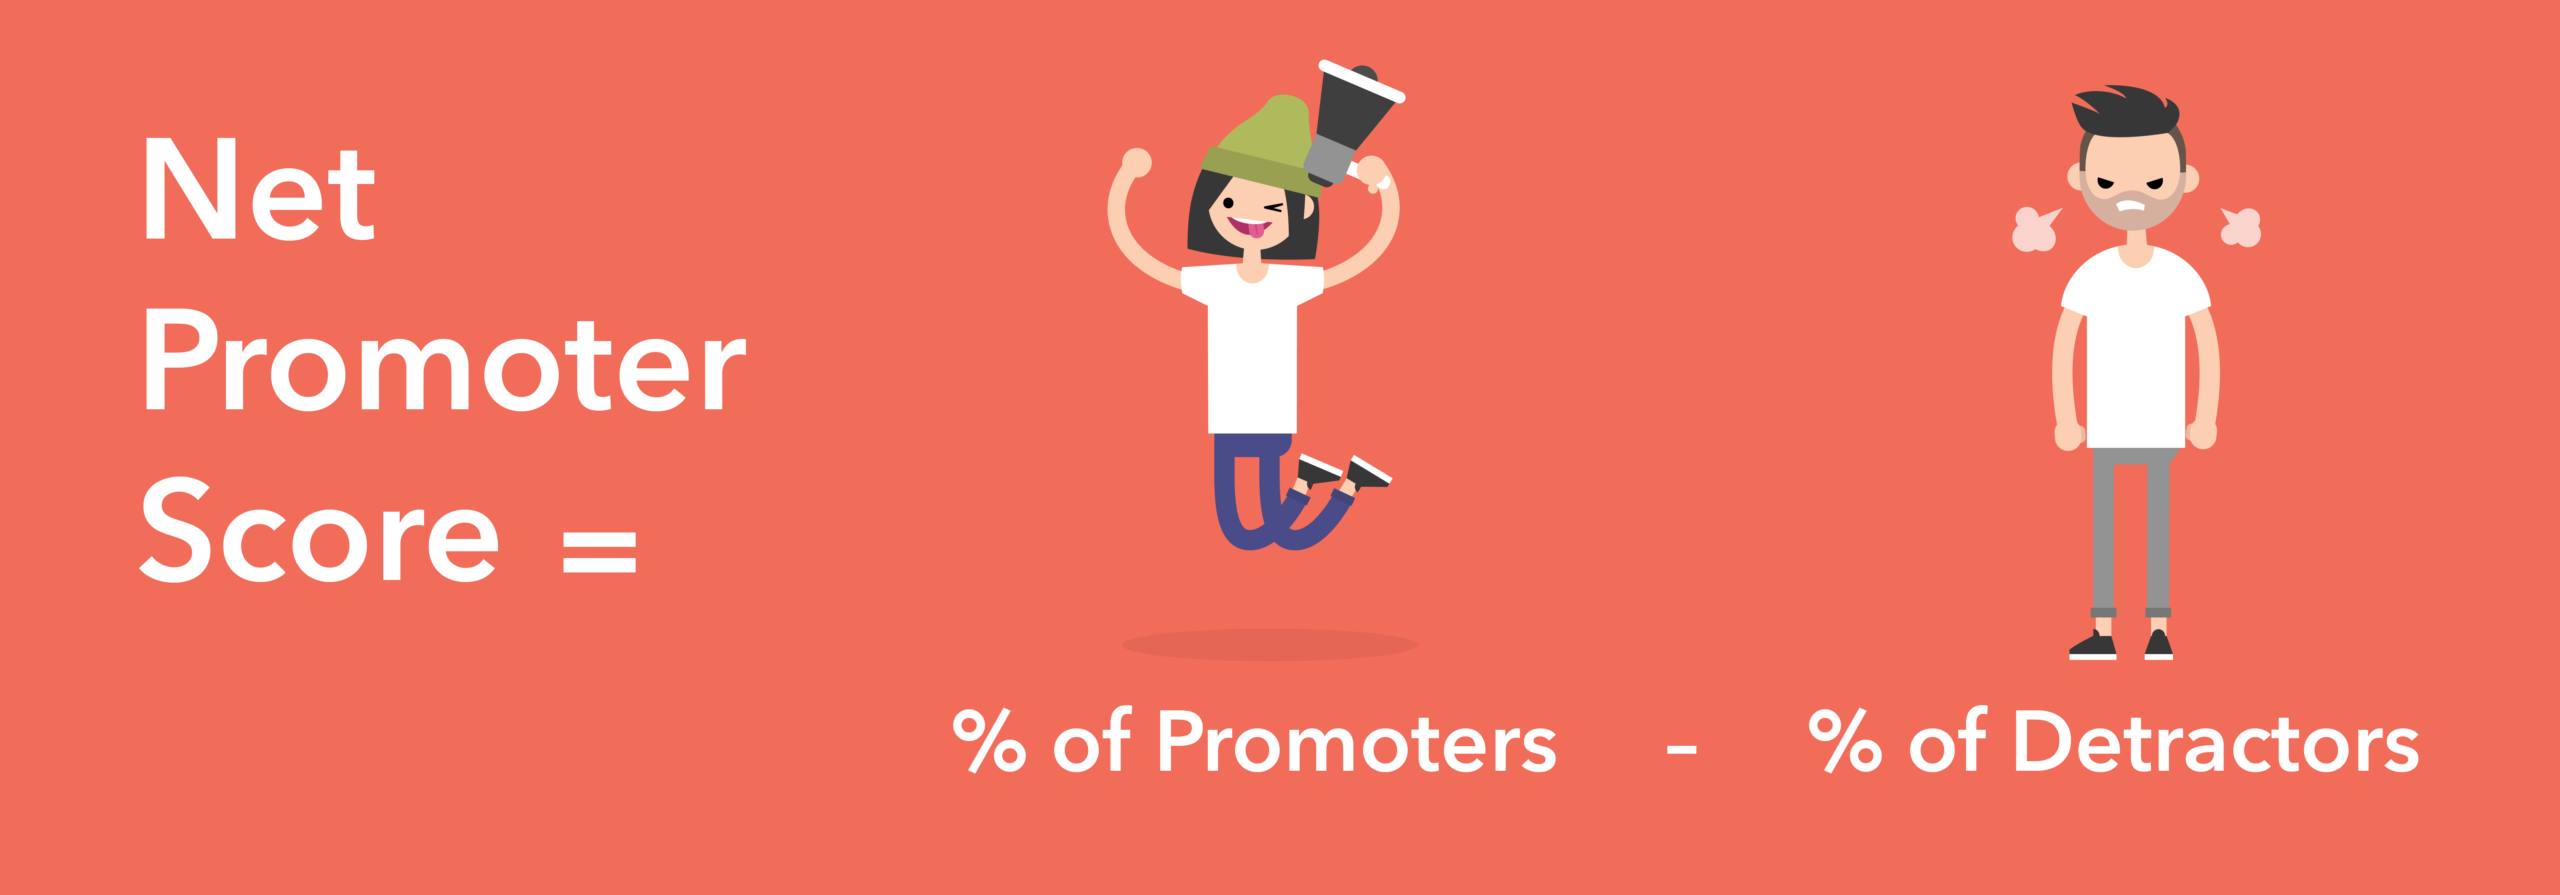 Net Promoter Score = % of Promoters - % of Detractors